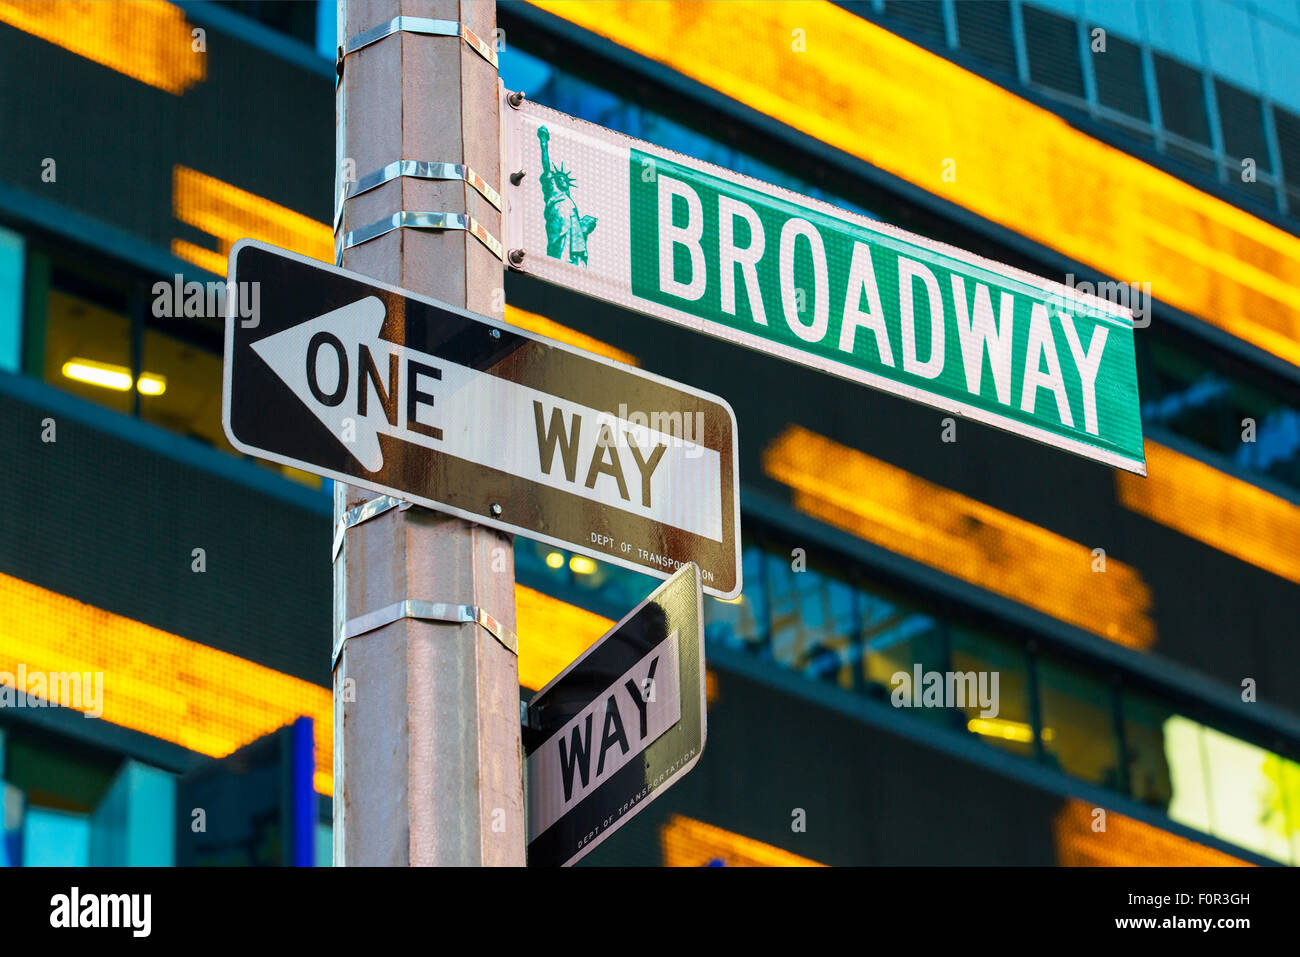 Broadway sign in Time Square, New York - Stock Image